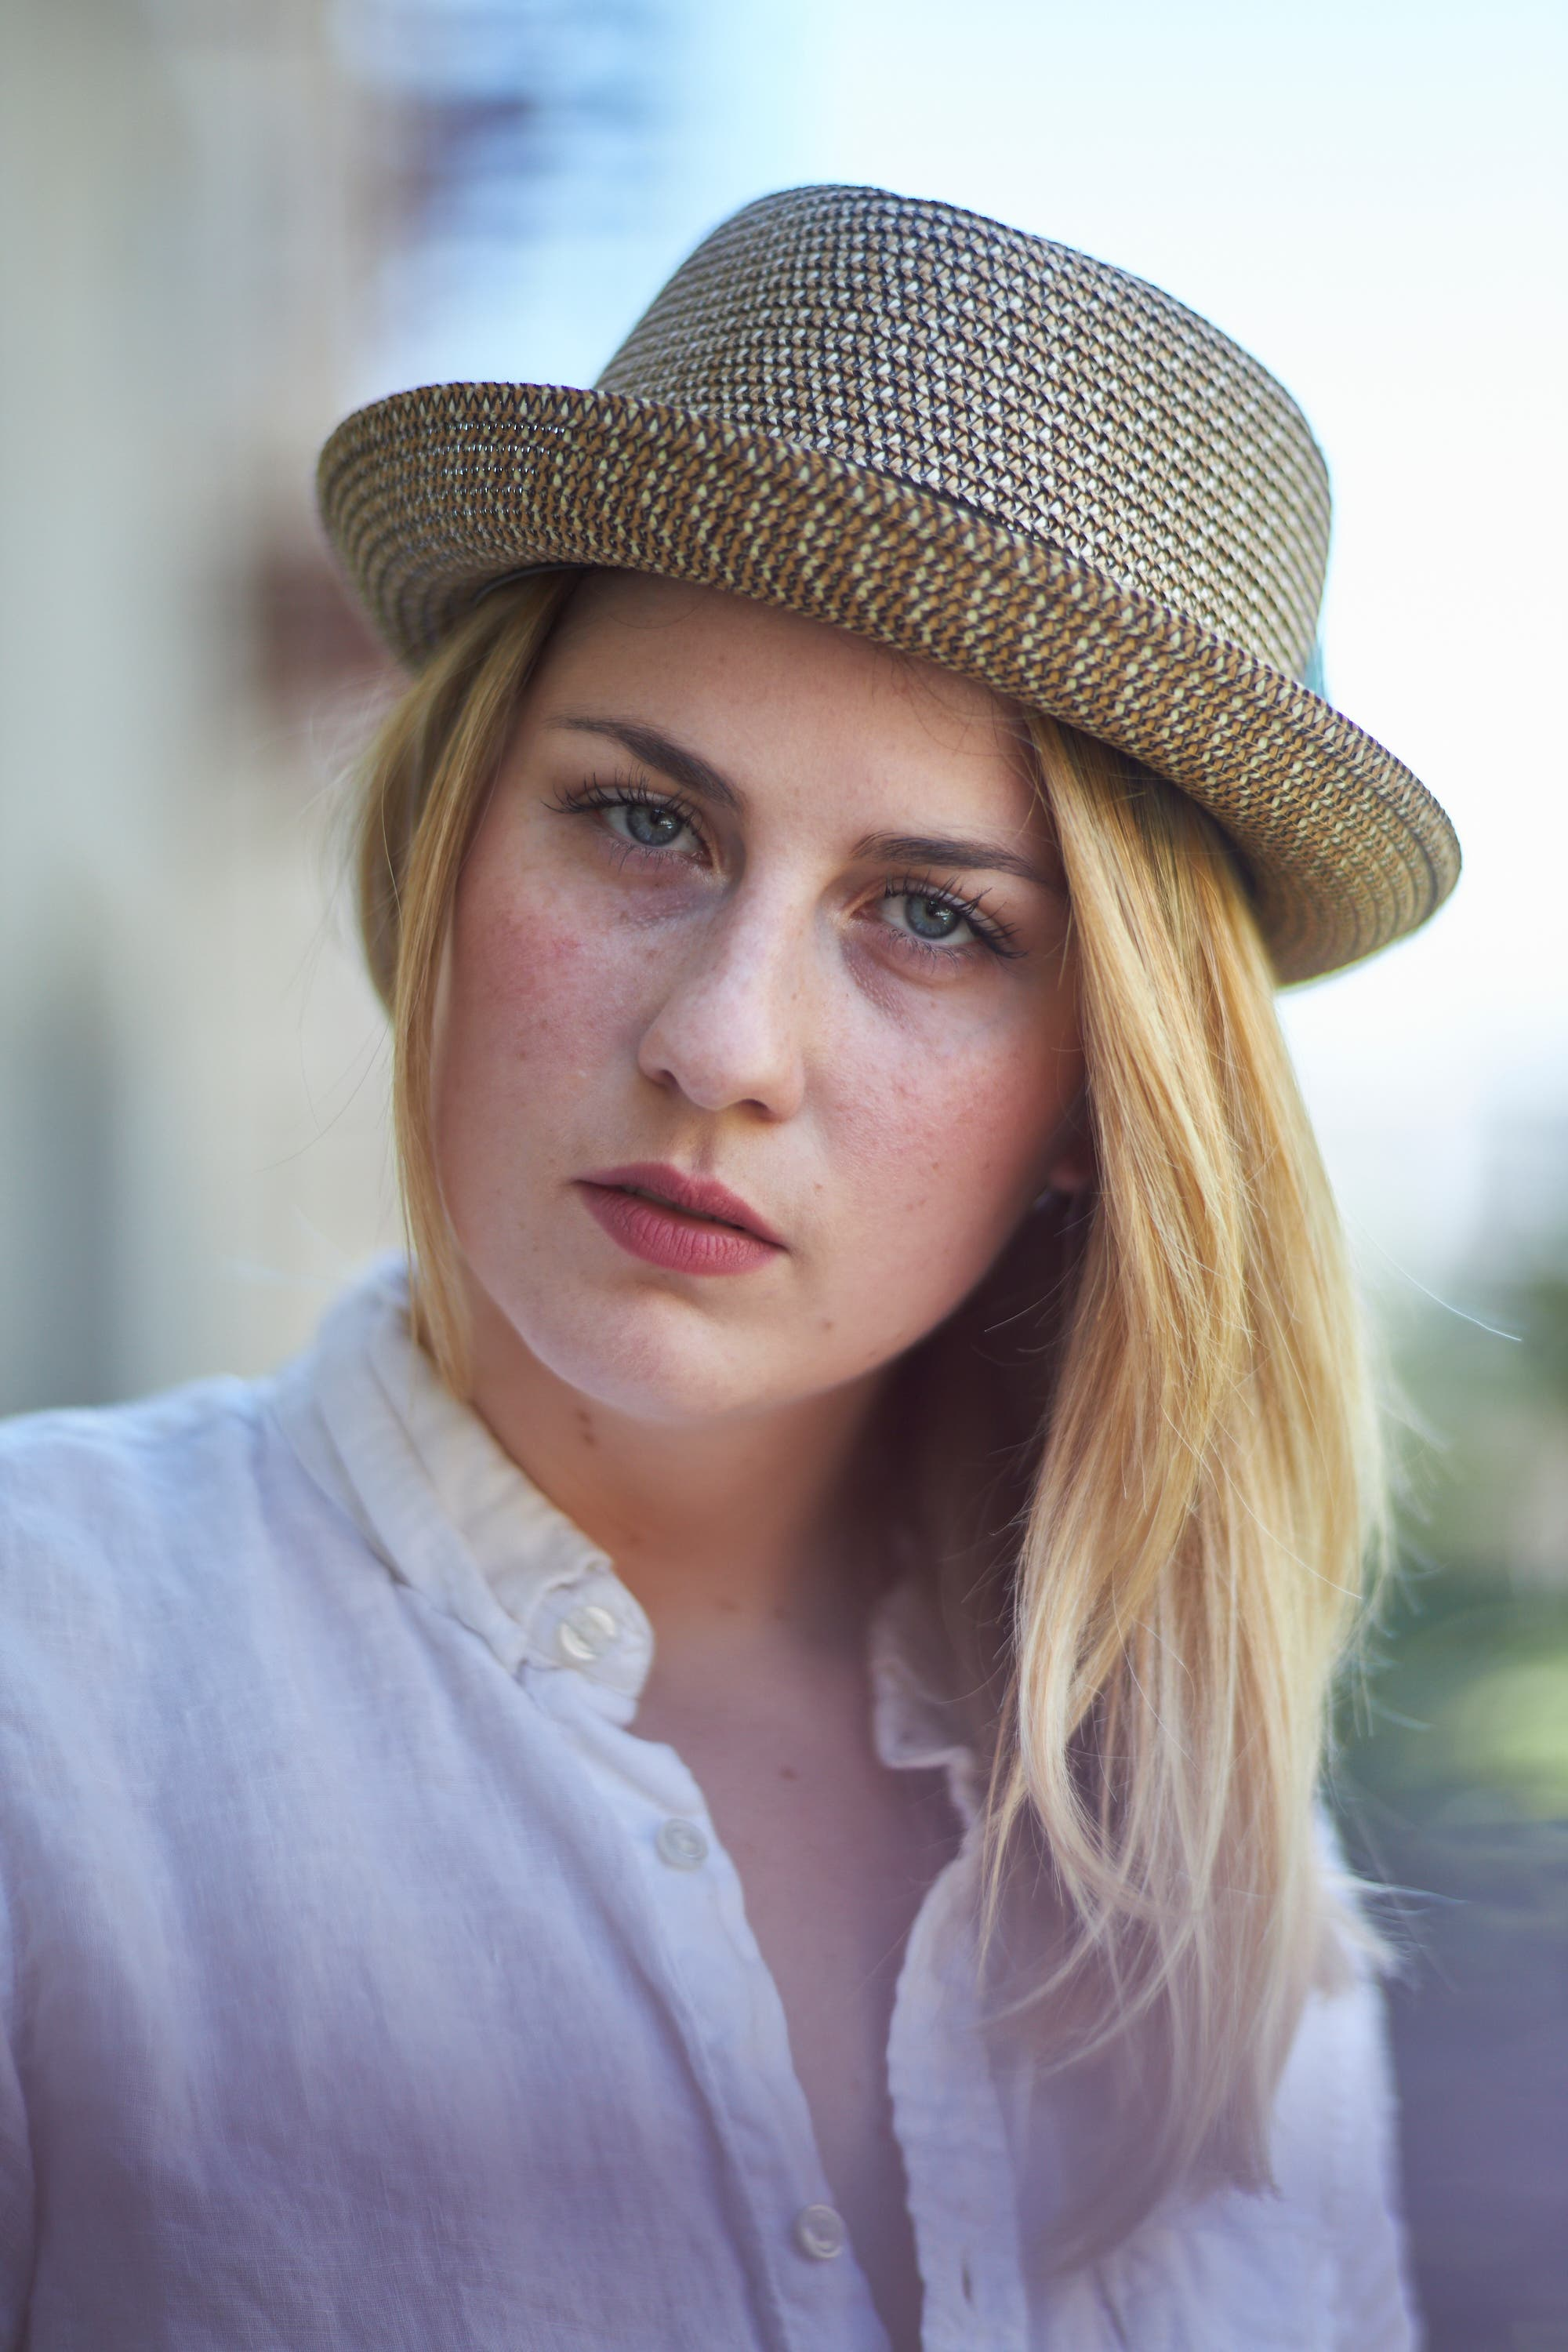 Tame the Sun for Better Natural Light Portraits With One Tool